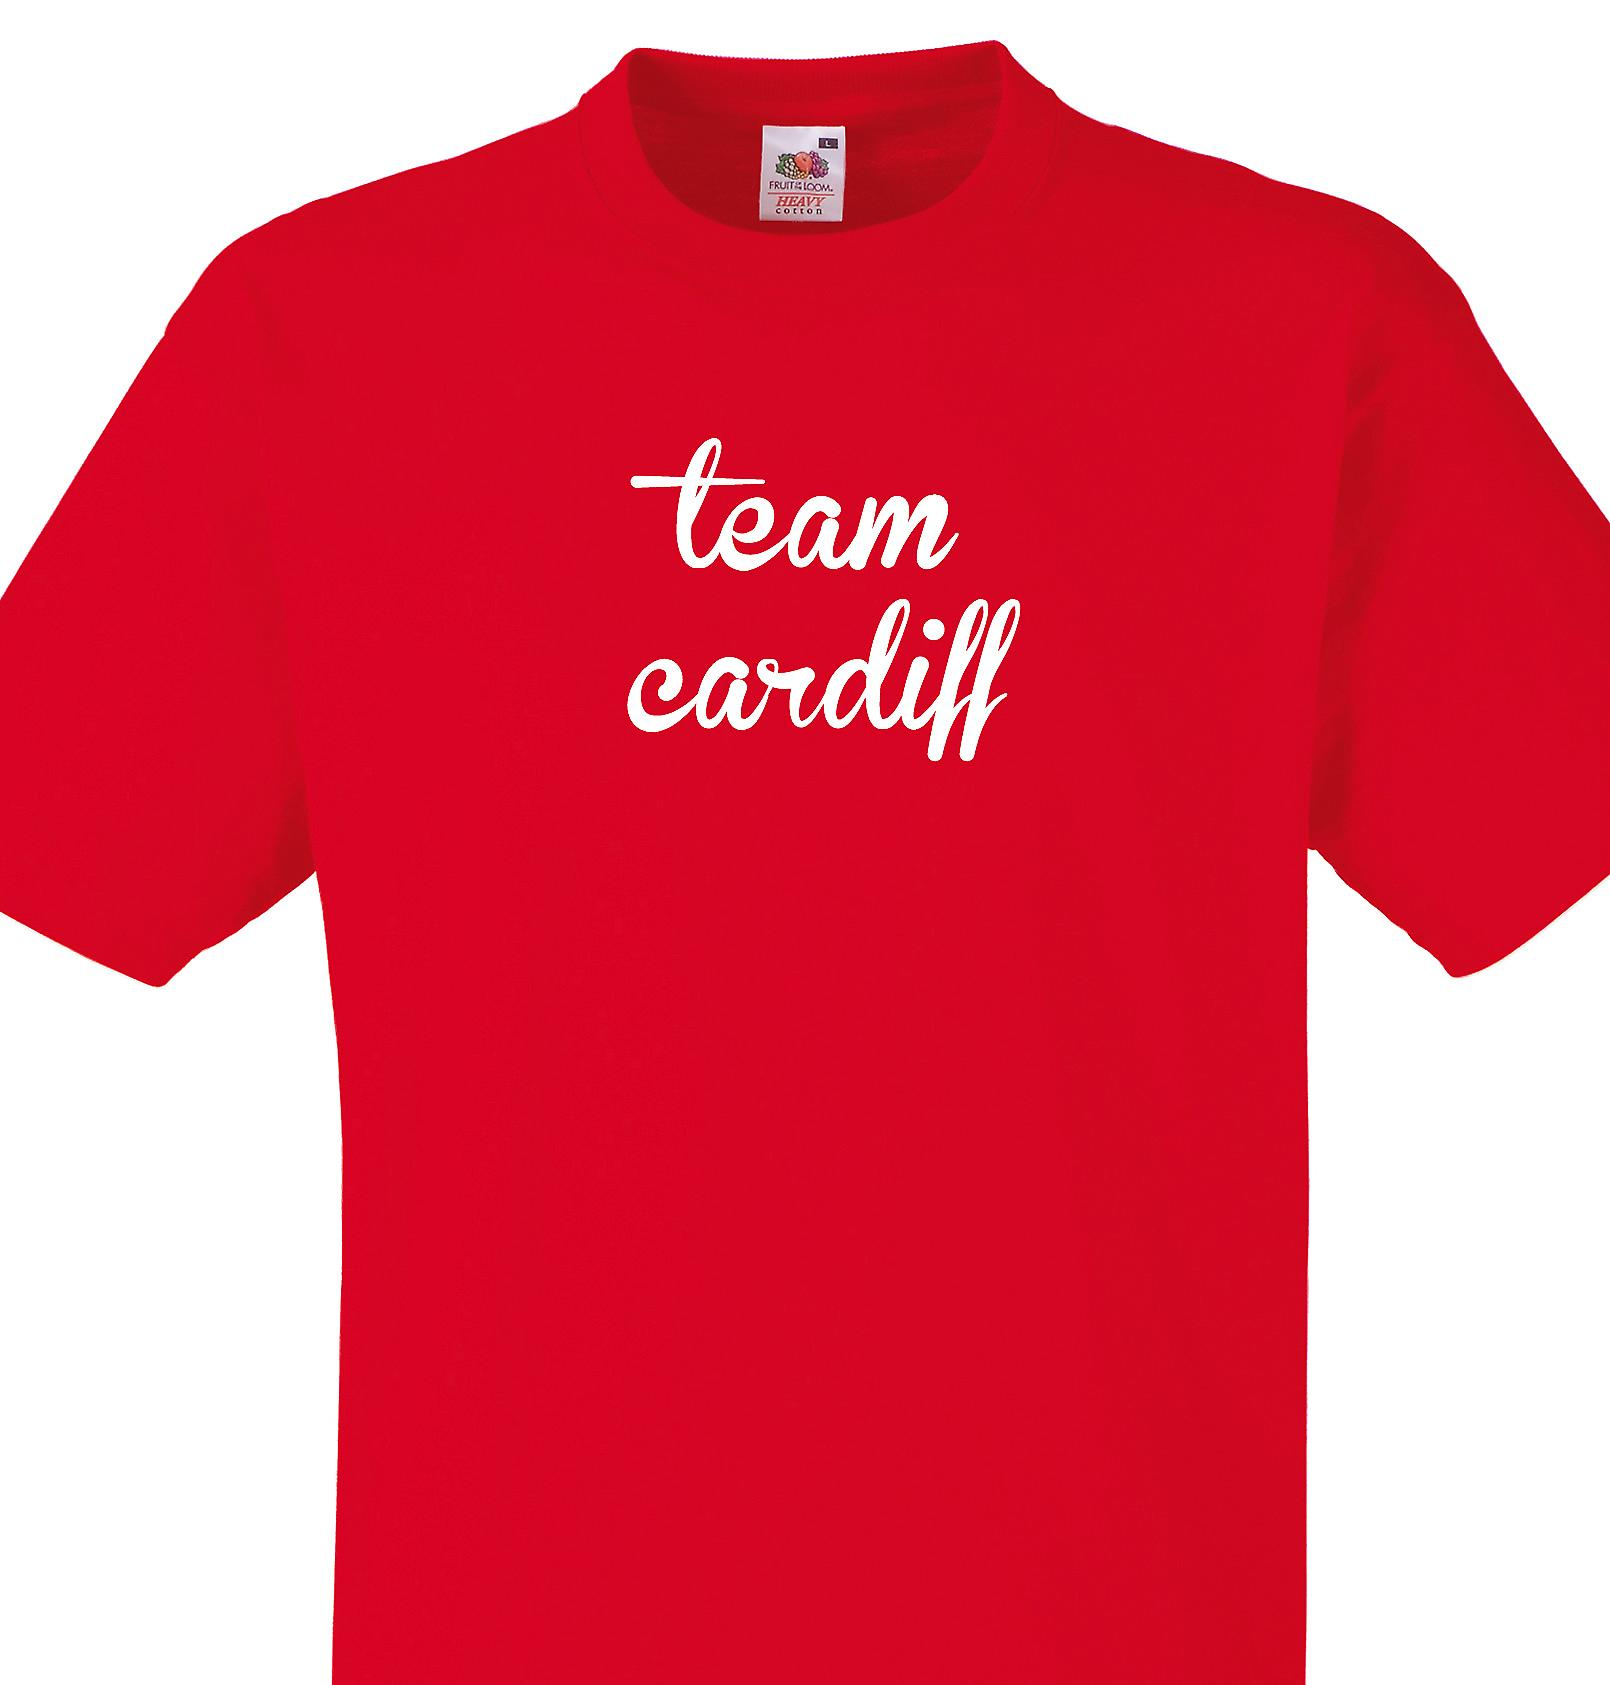 Team Cardiff Red T shirt